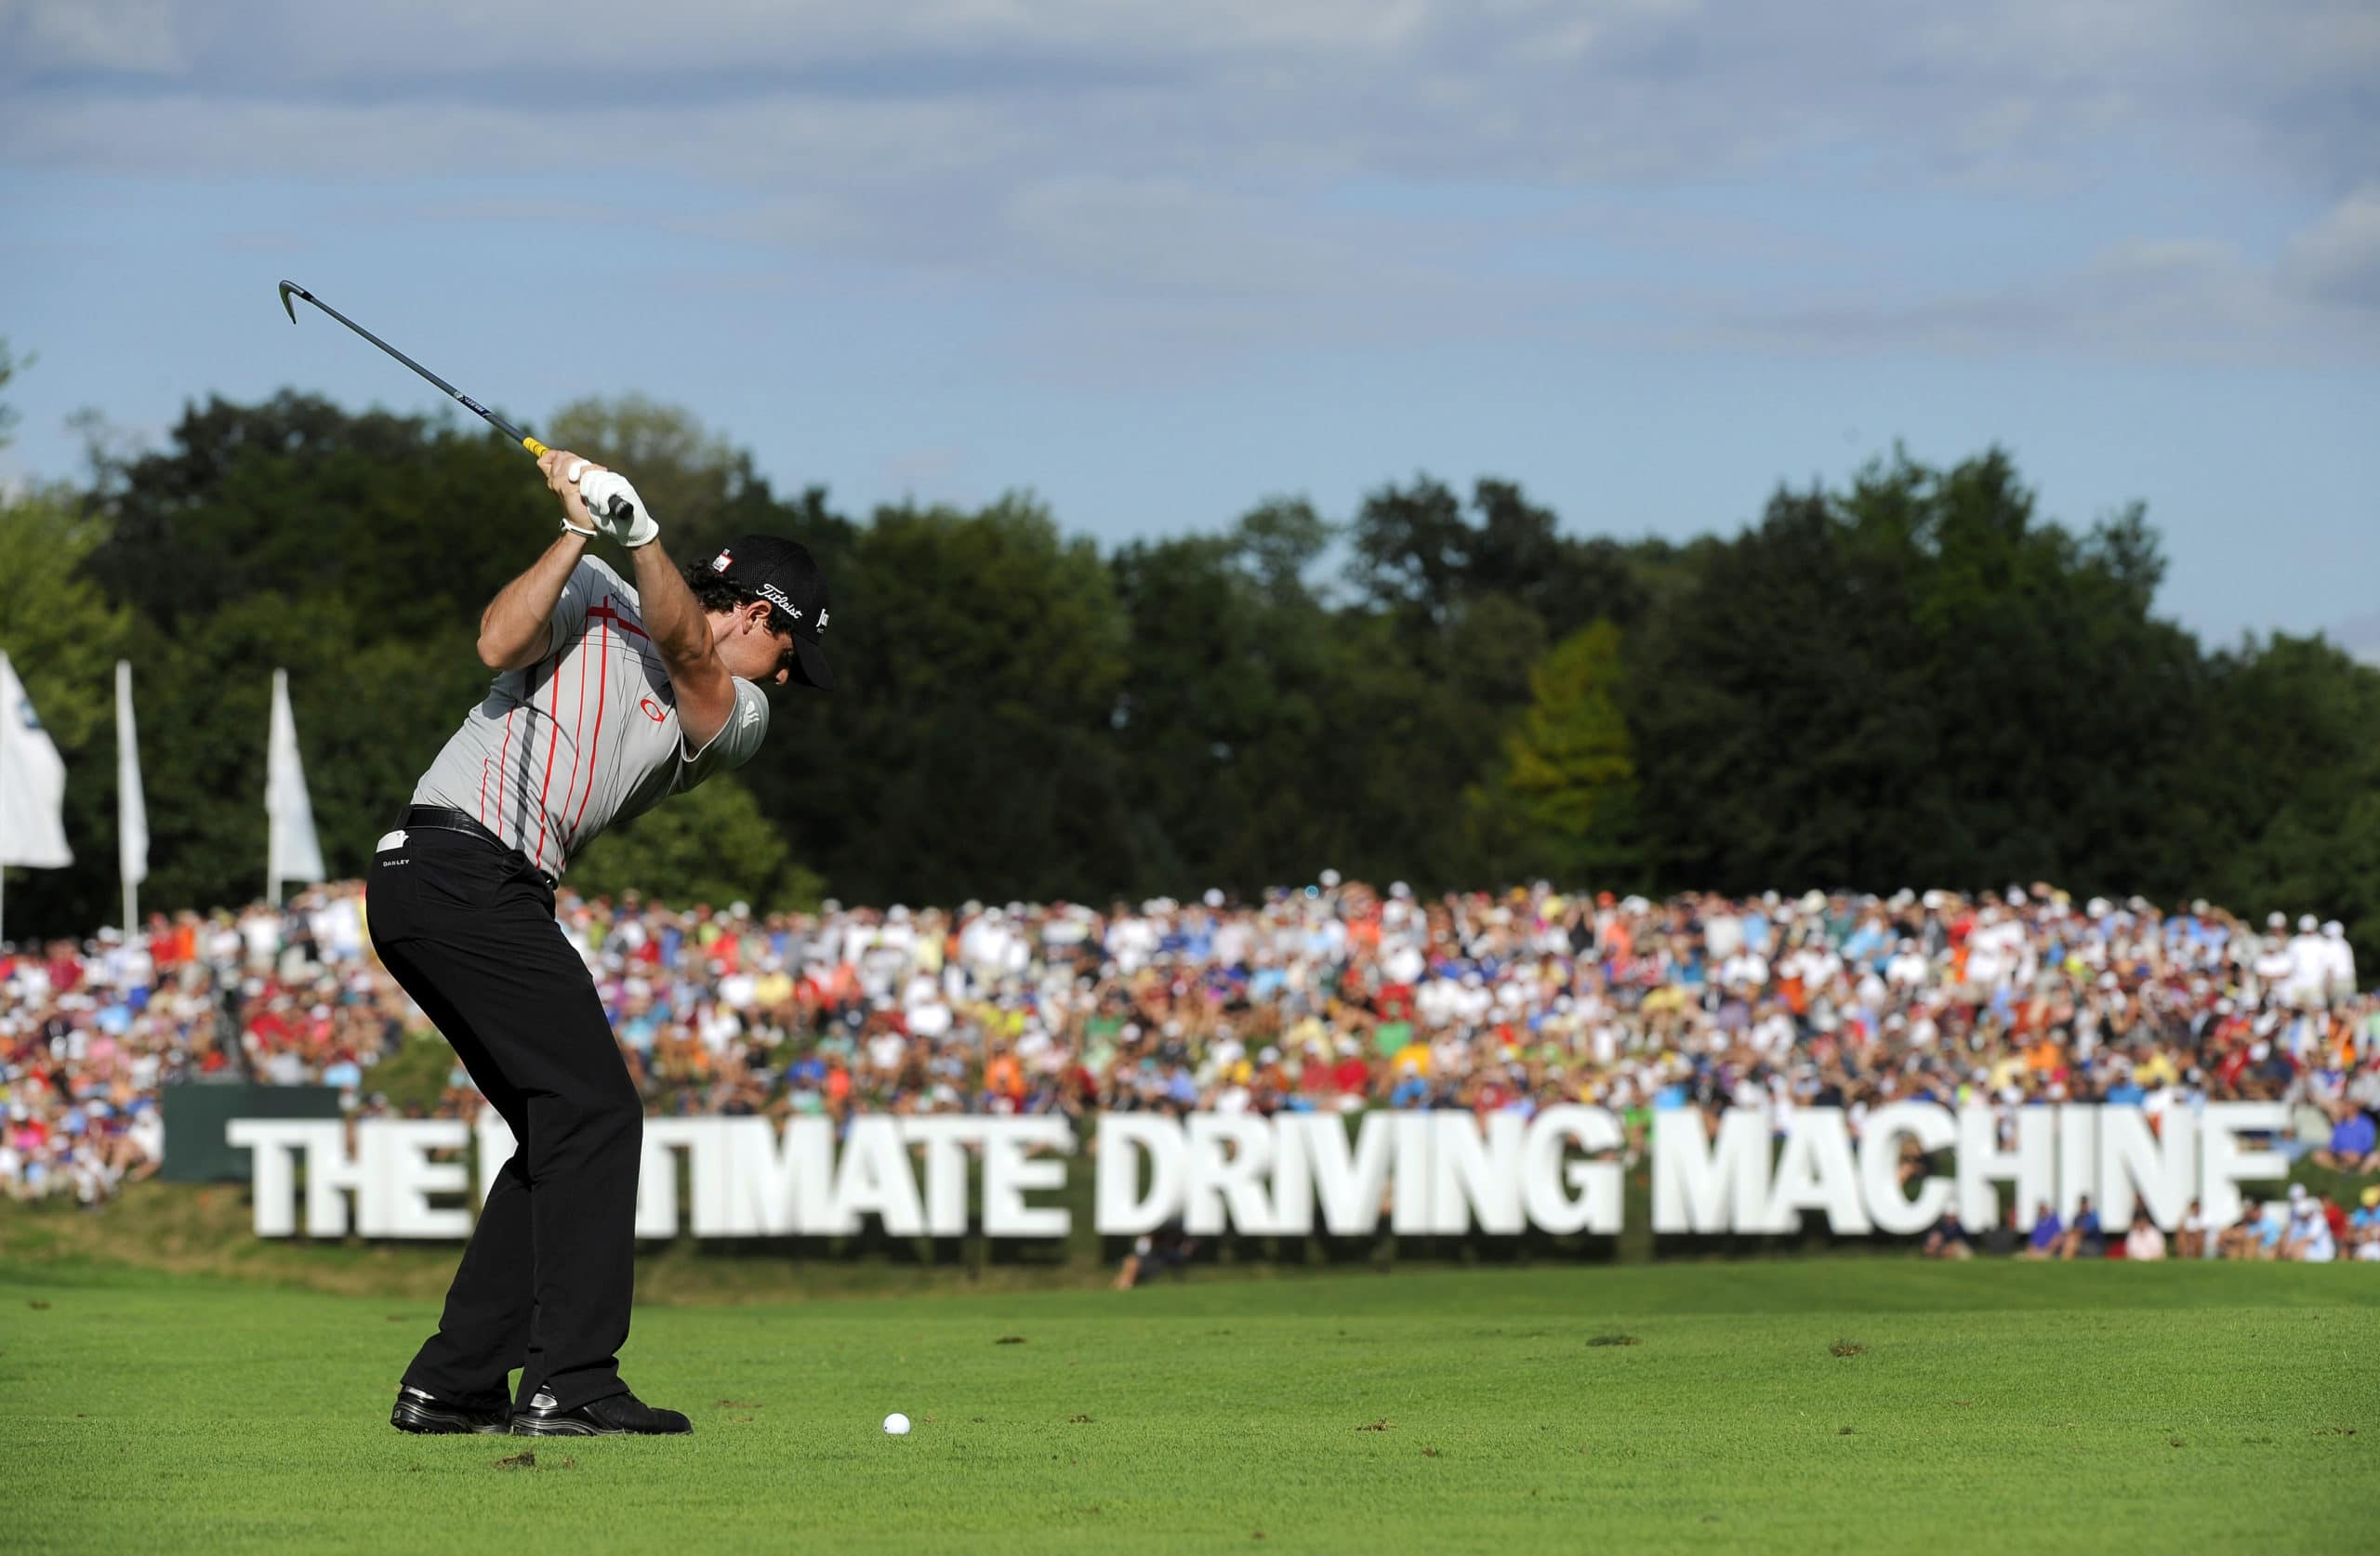 Bmw Championship Is Promoted With Science And Makes